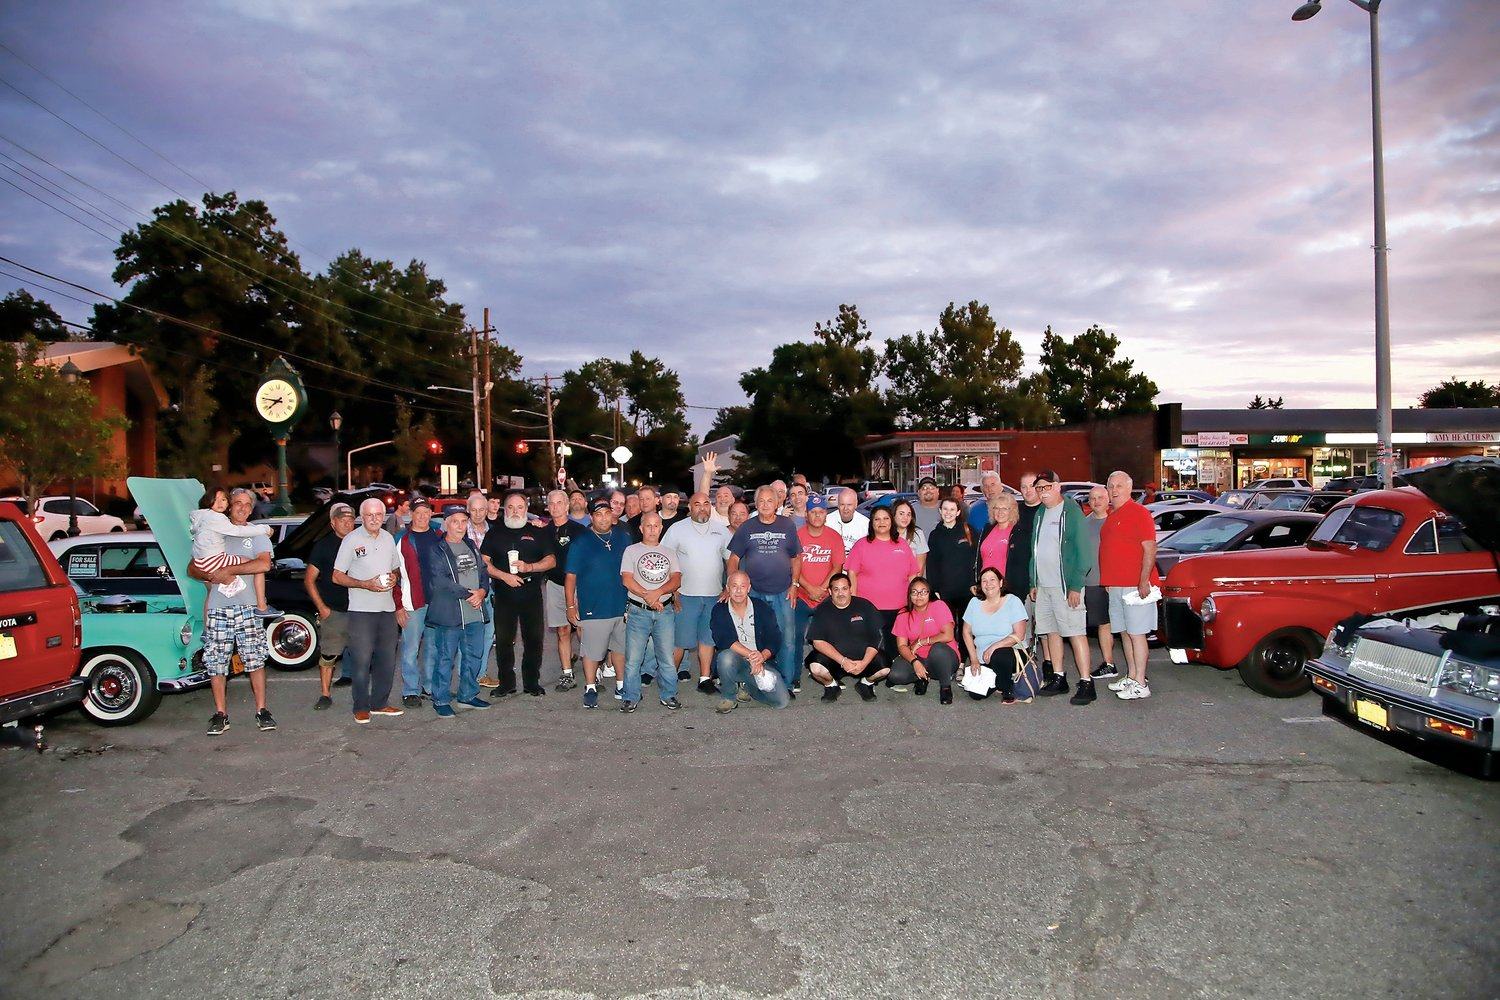 Members of the Empire Muscle Car and Dawgwood Boyz clubs gathered on Aug. 27 at the Best Market parking lot in Franklin Square as they do every Tuesday evening.